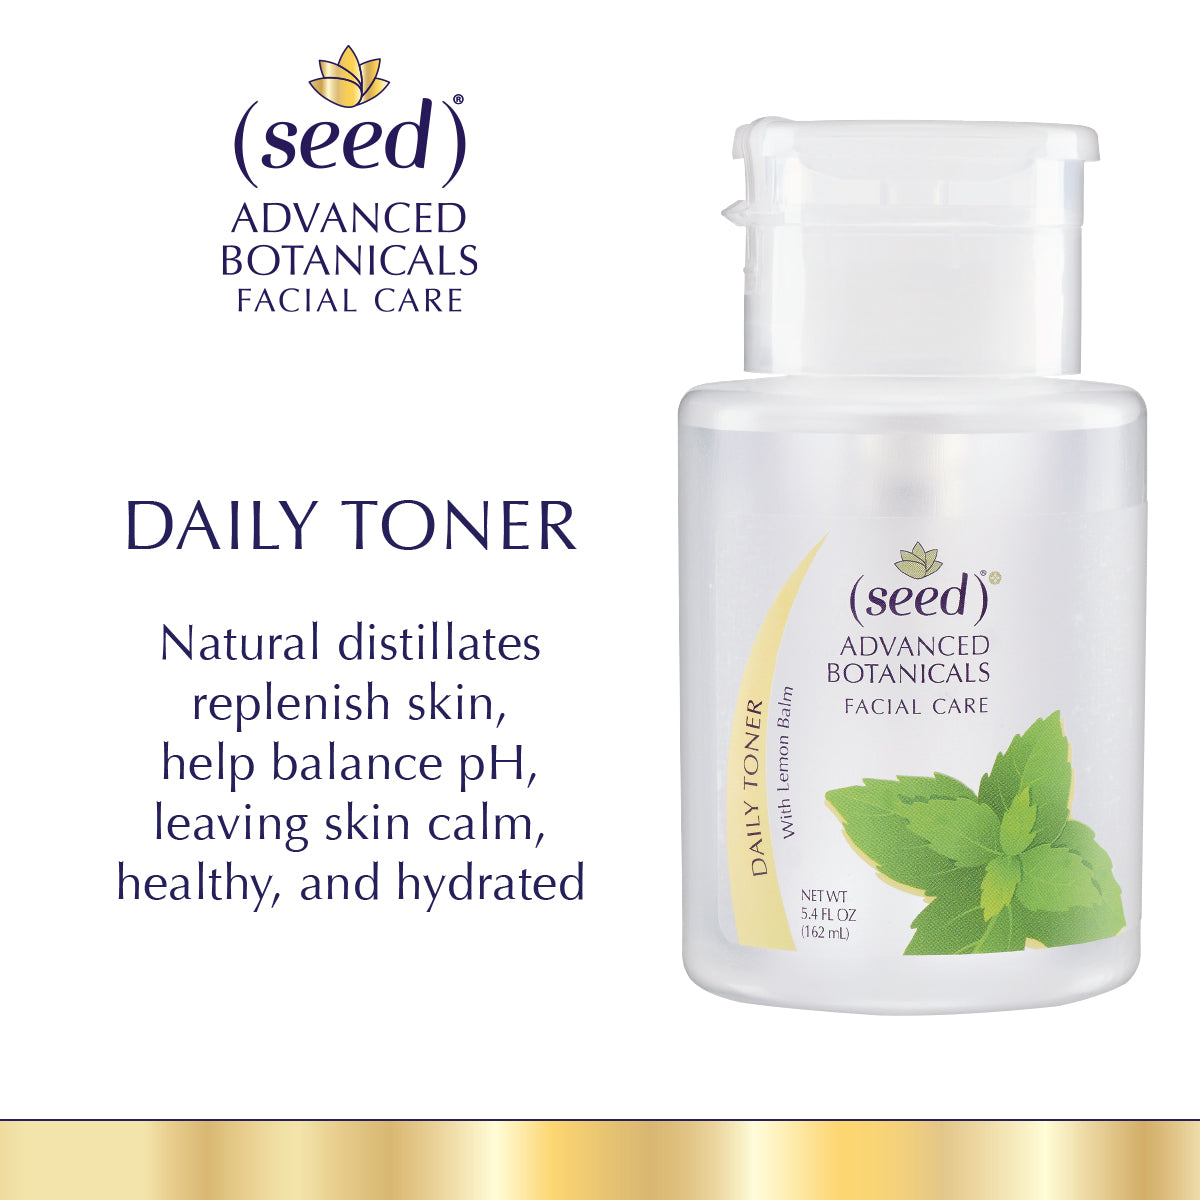 Seed Advanced Botanicals Face Toner Benefits